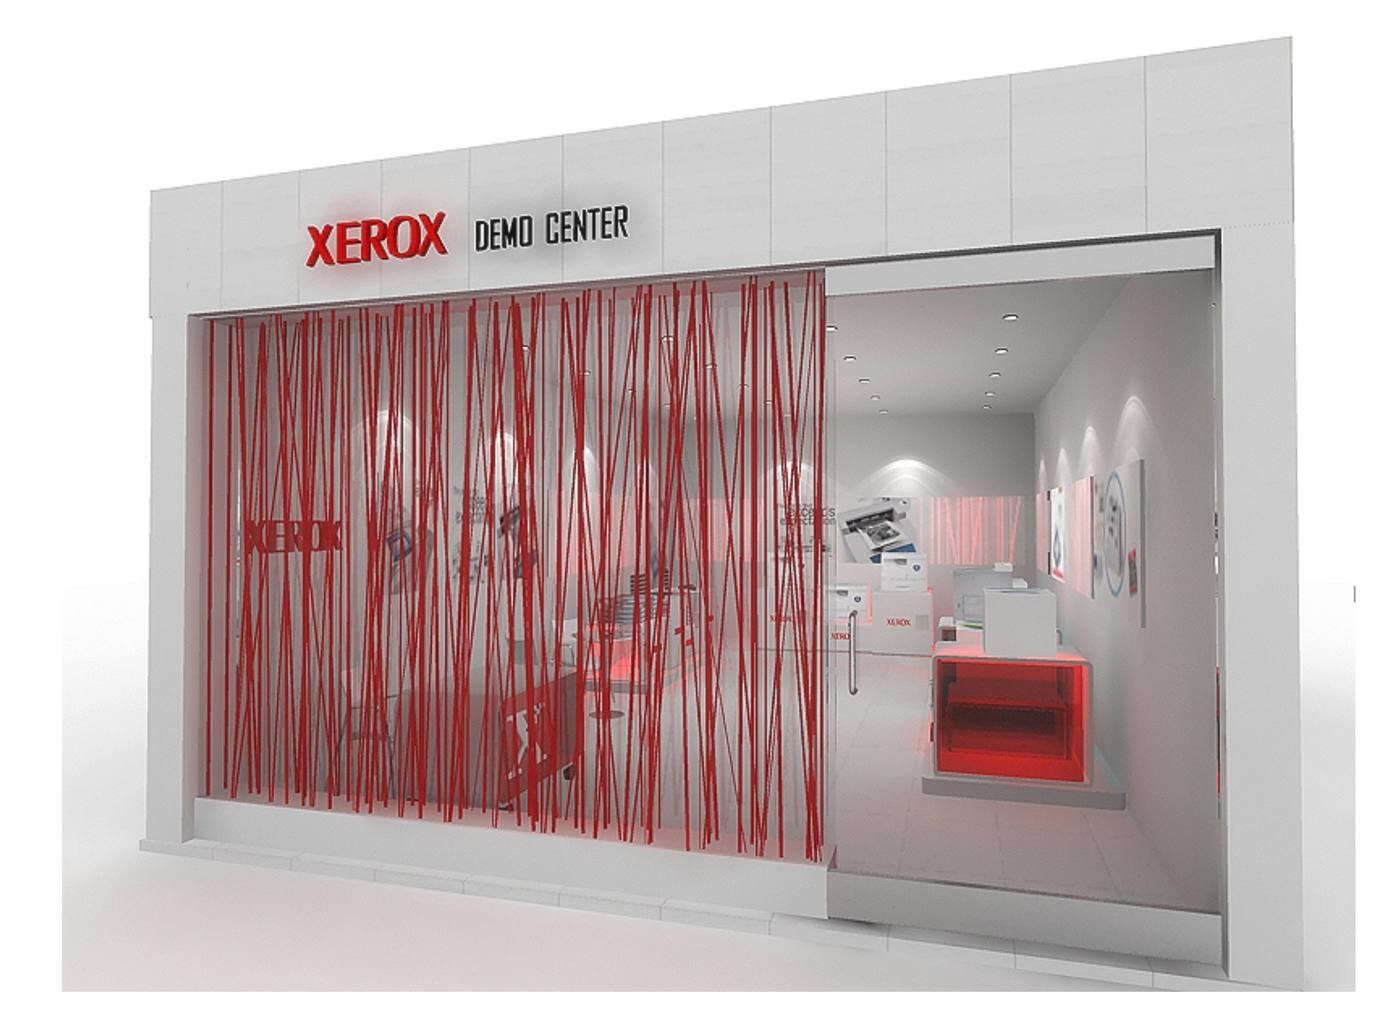 Store Design For Xerox  Project Done At Shark Design Studio ,New Delhi    The Concept Is Derived From The Key Function That The Product Range  (photocopiers ...